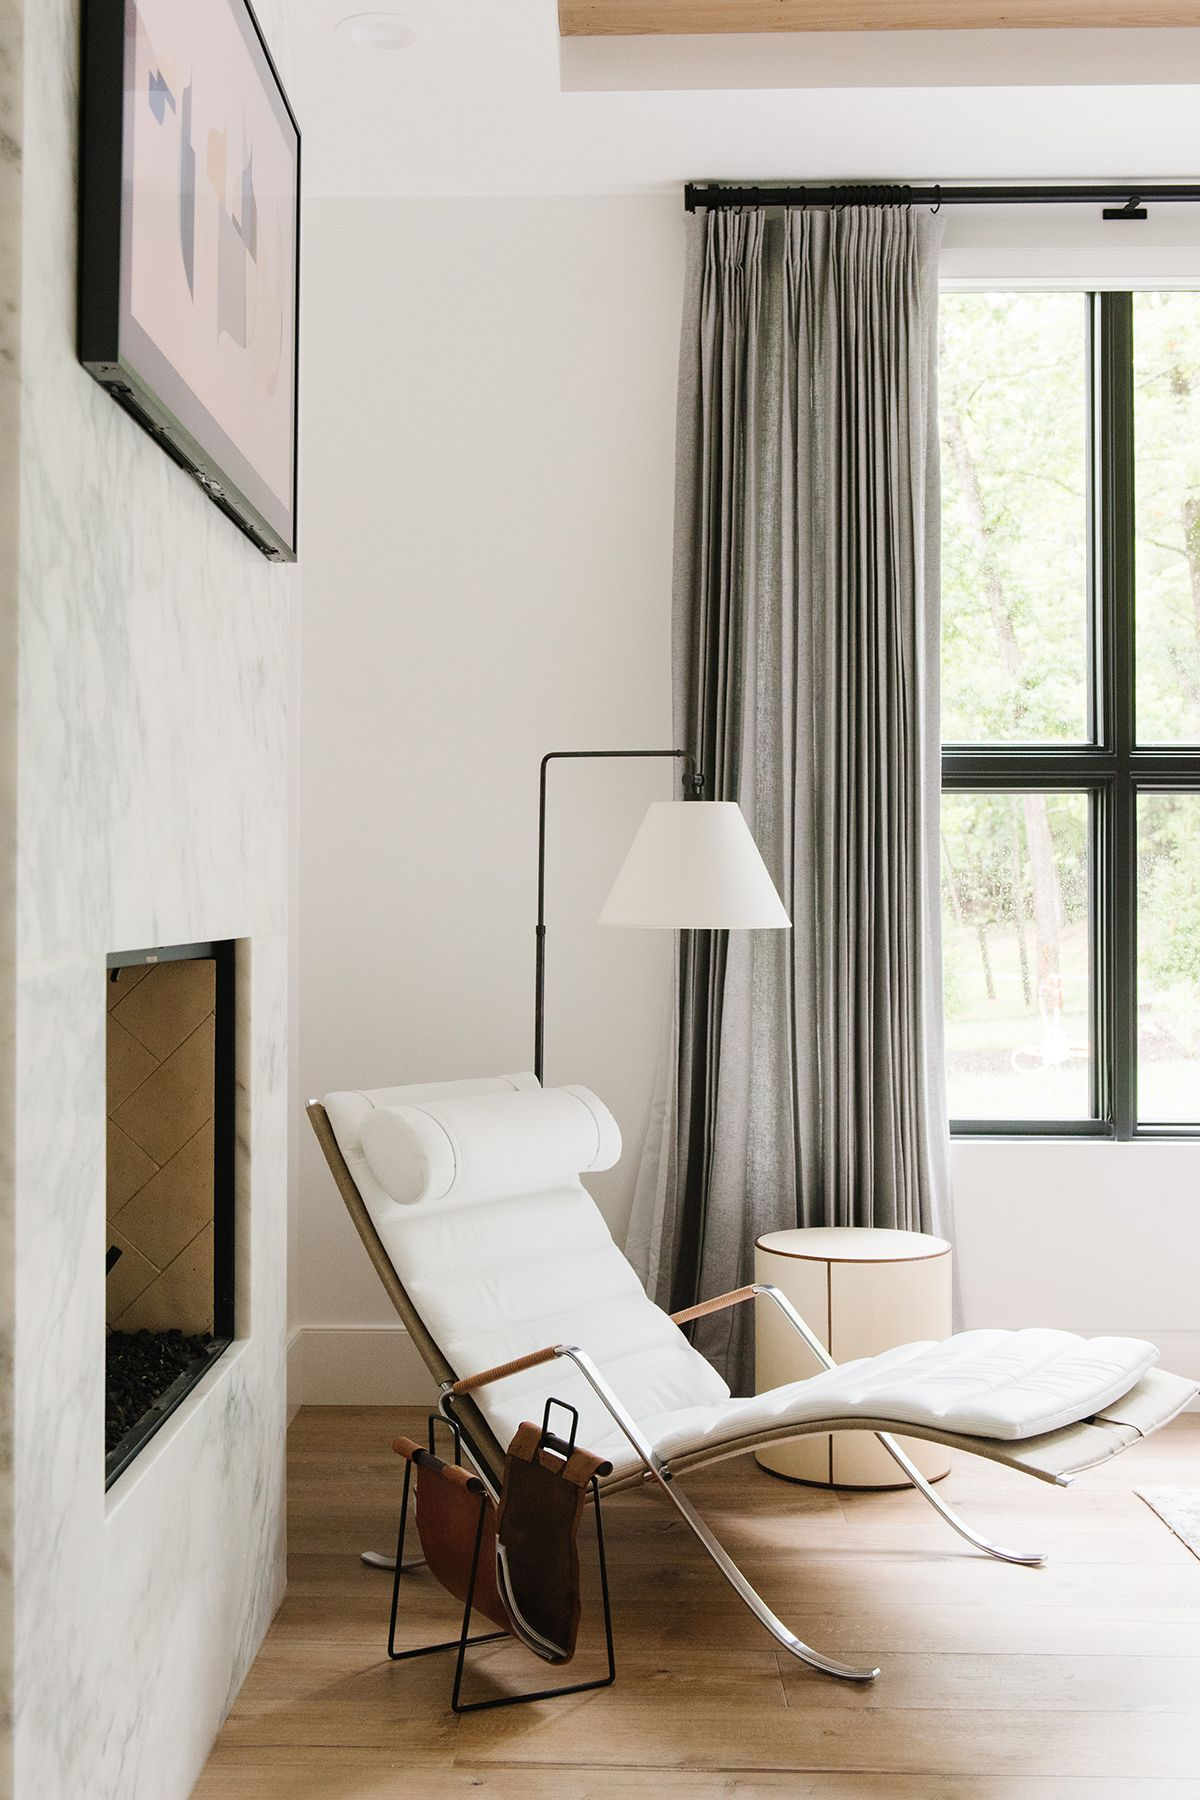 master bedroom lounge chair rocking chairs for nursery canada modern lake house photo tour the wing studio mcgee in corner with lamp and magazine sling lakehouse by